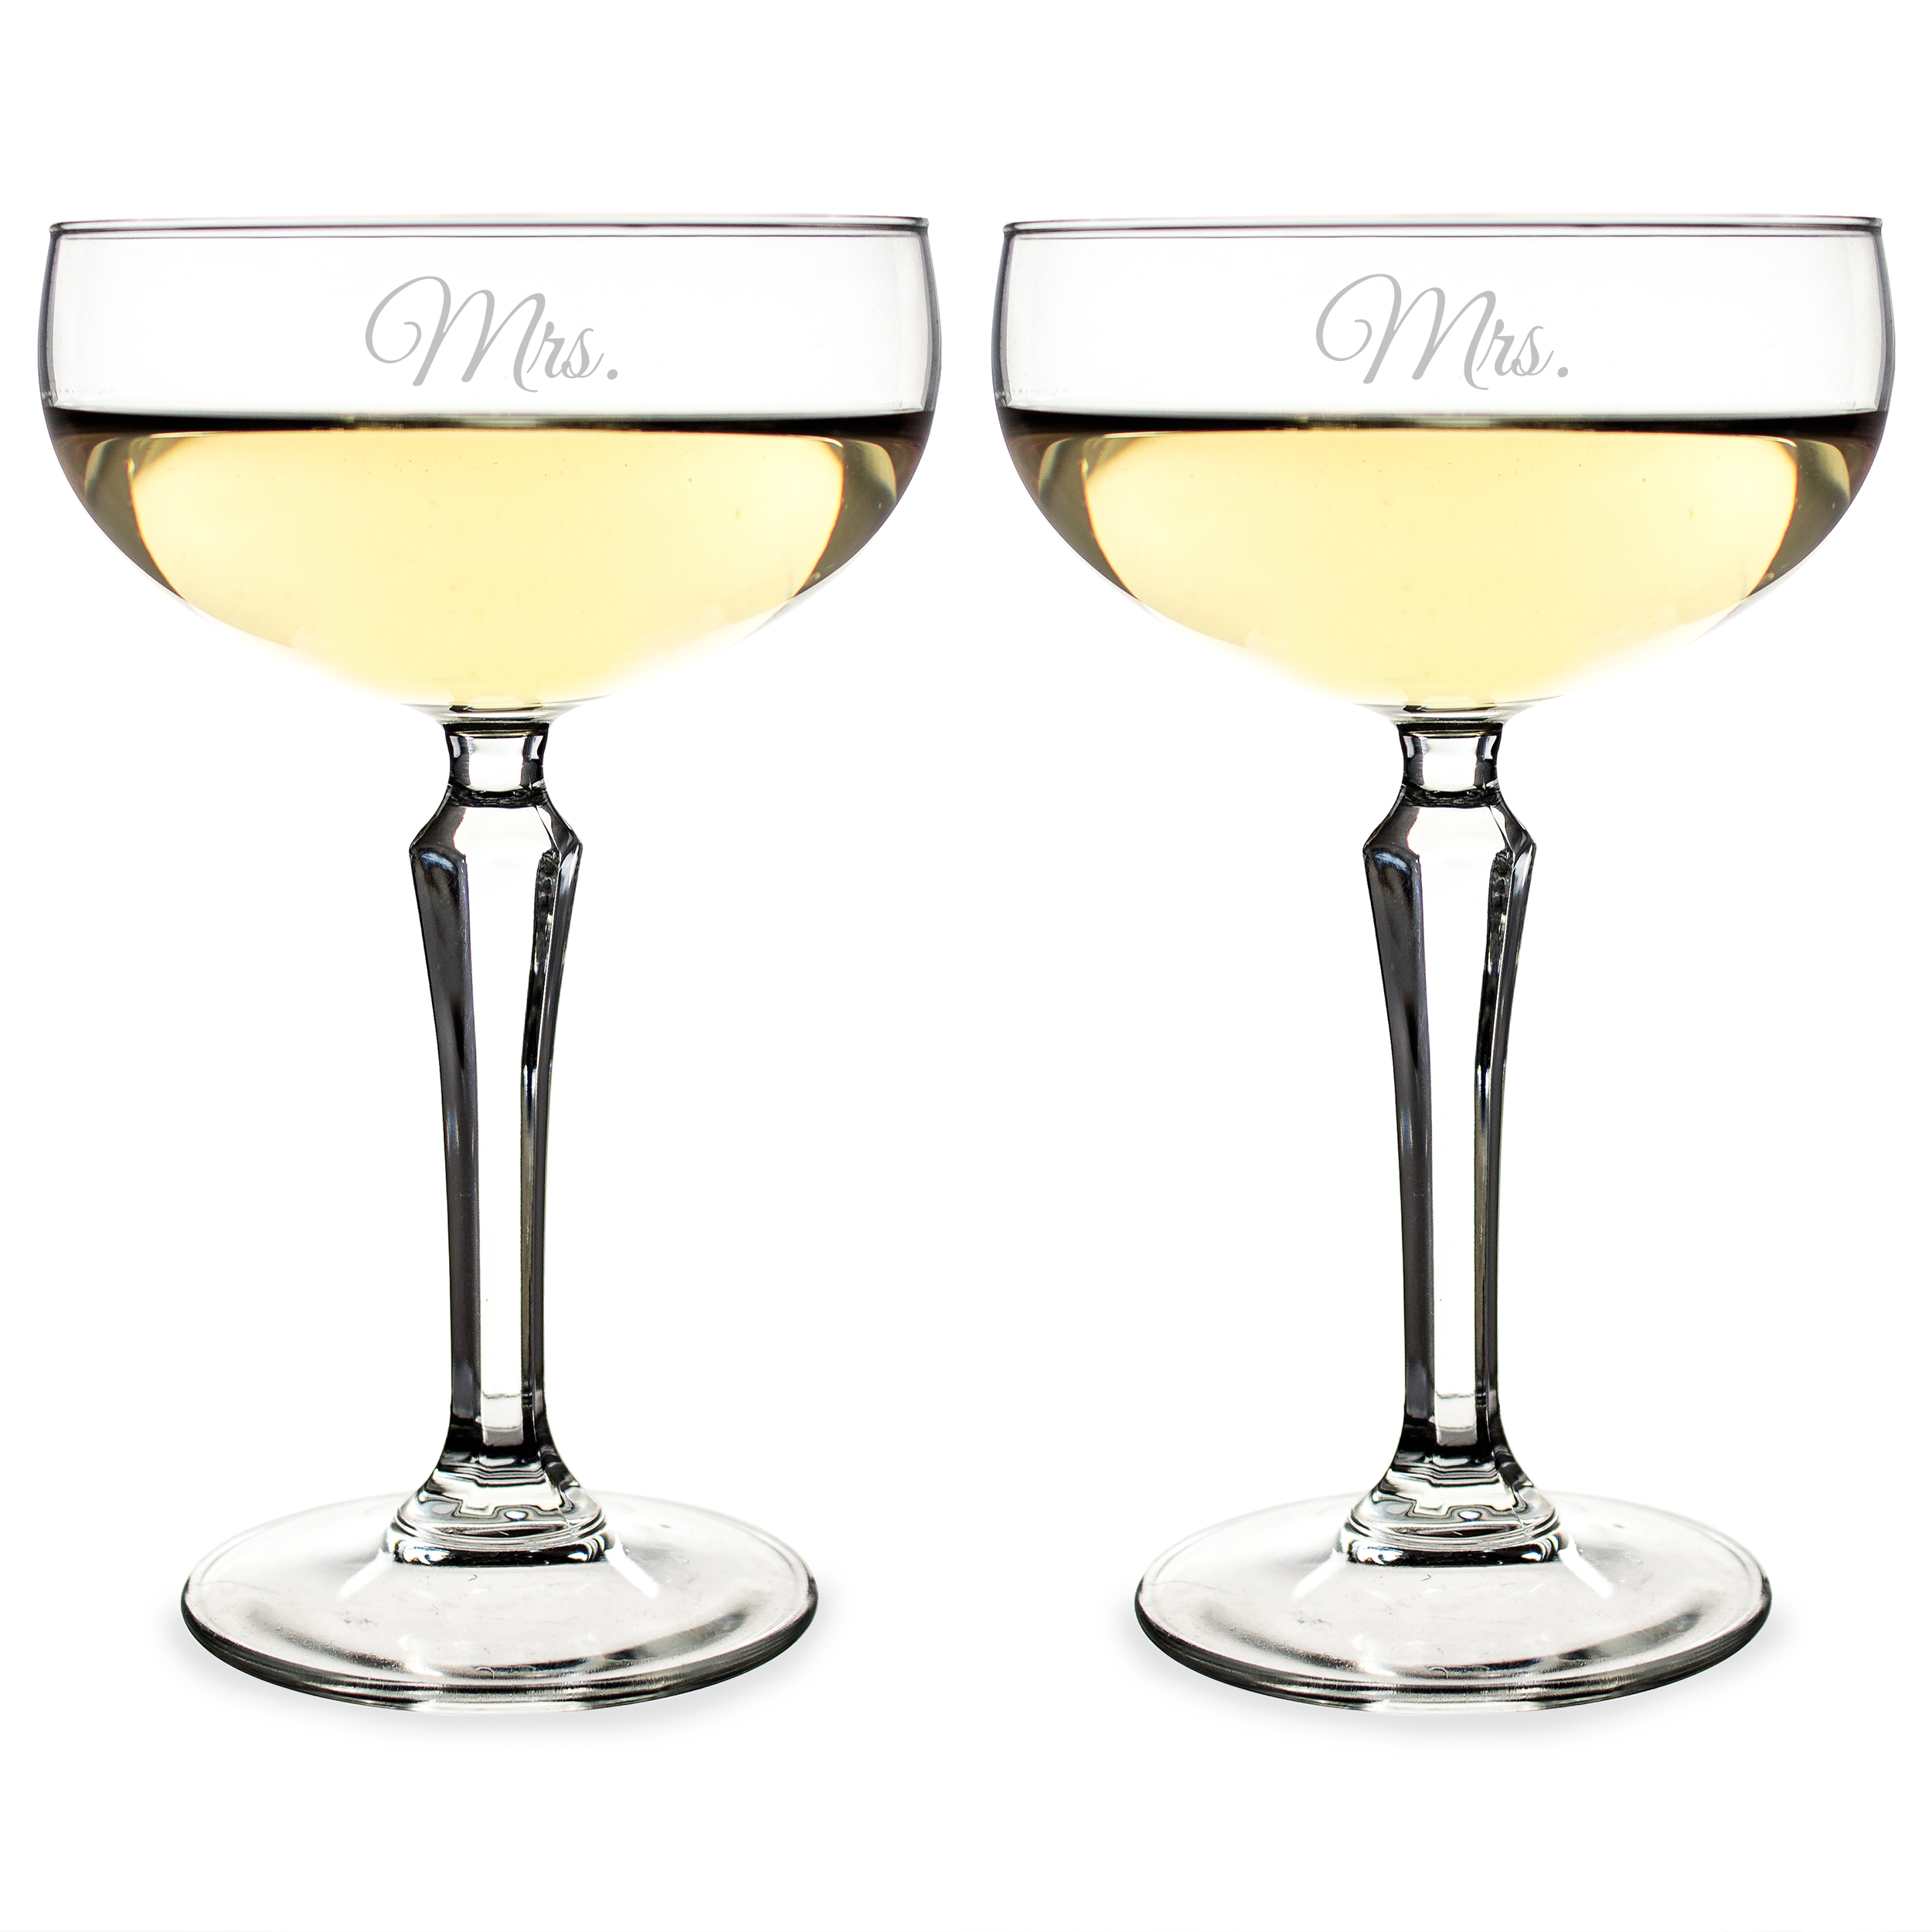 Cathys Concepts MRS1230-2 8.25 oz Mrs. & Mrs. Champagne Coupe Flutes